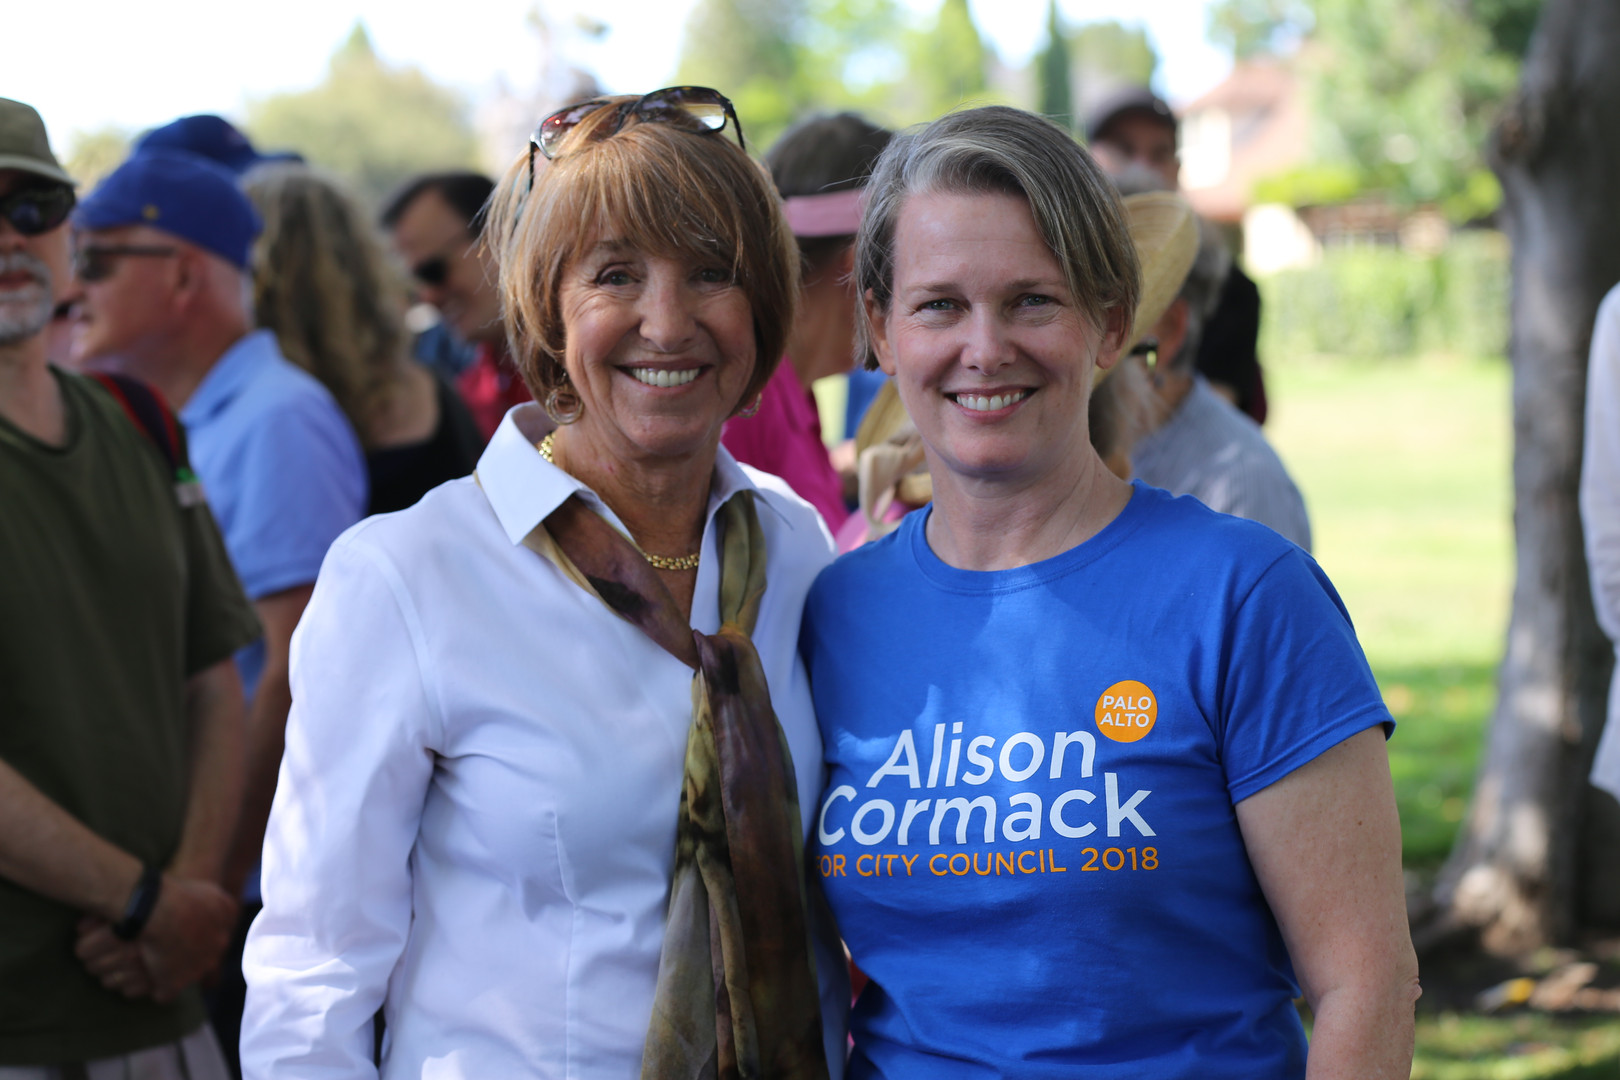 Liz Kniss and Alison Cormack